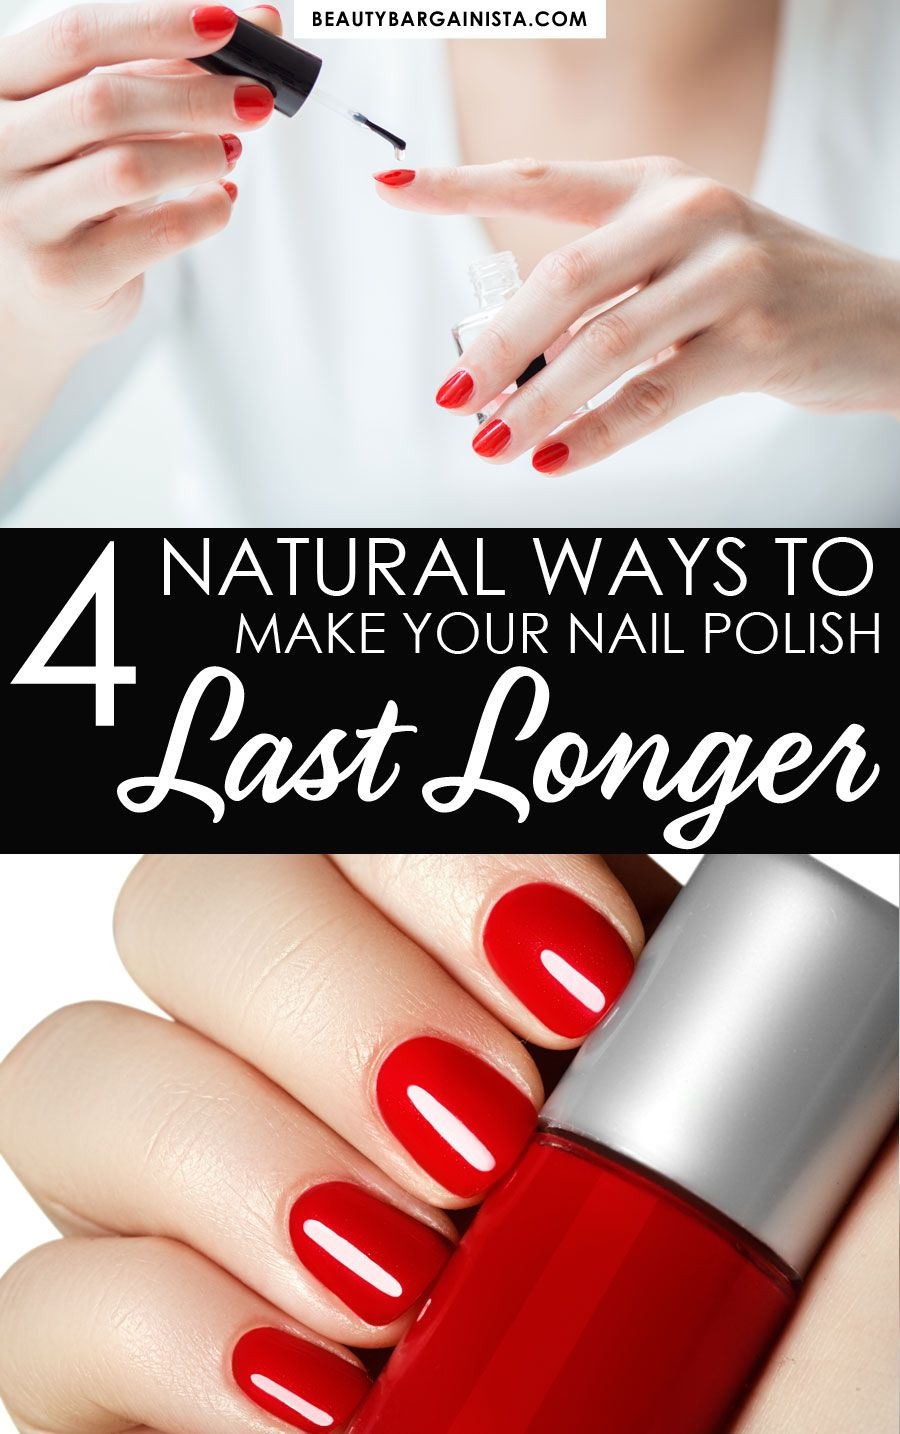 4 Natural Ways To Make Nail Polish Last Longer Long Lasting Nail Polish Nail Polish Beauty Hacks Nails